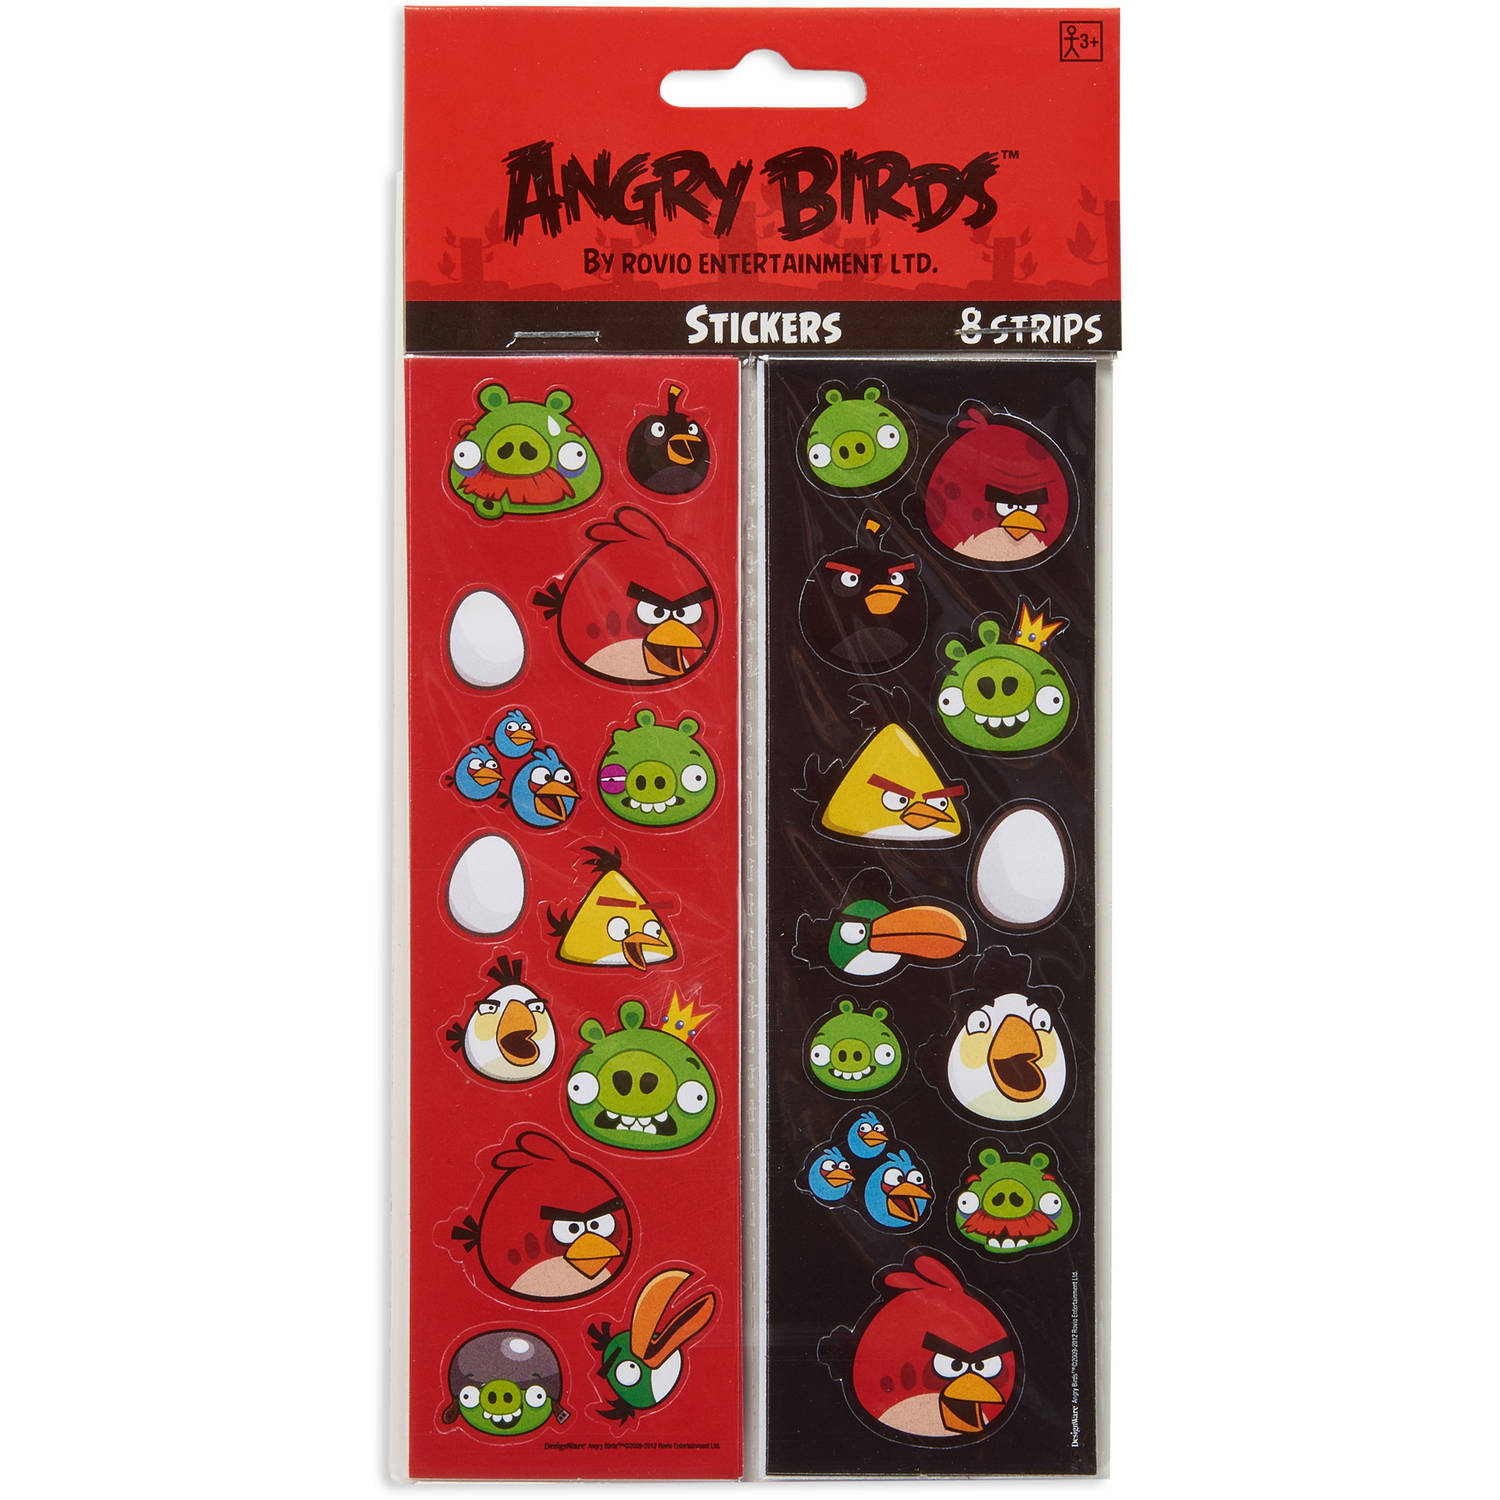 Angry Birds Sticker Sheets, 8 Count, Party Supplies